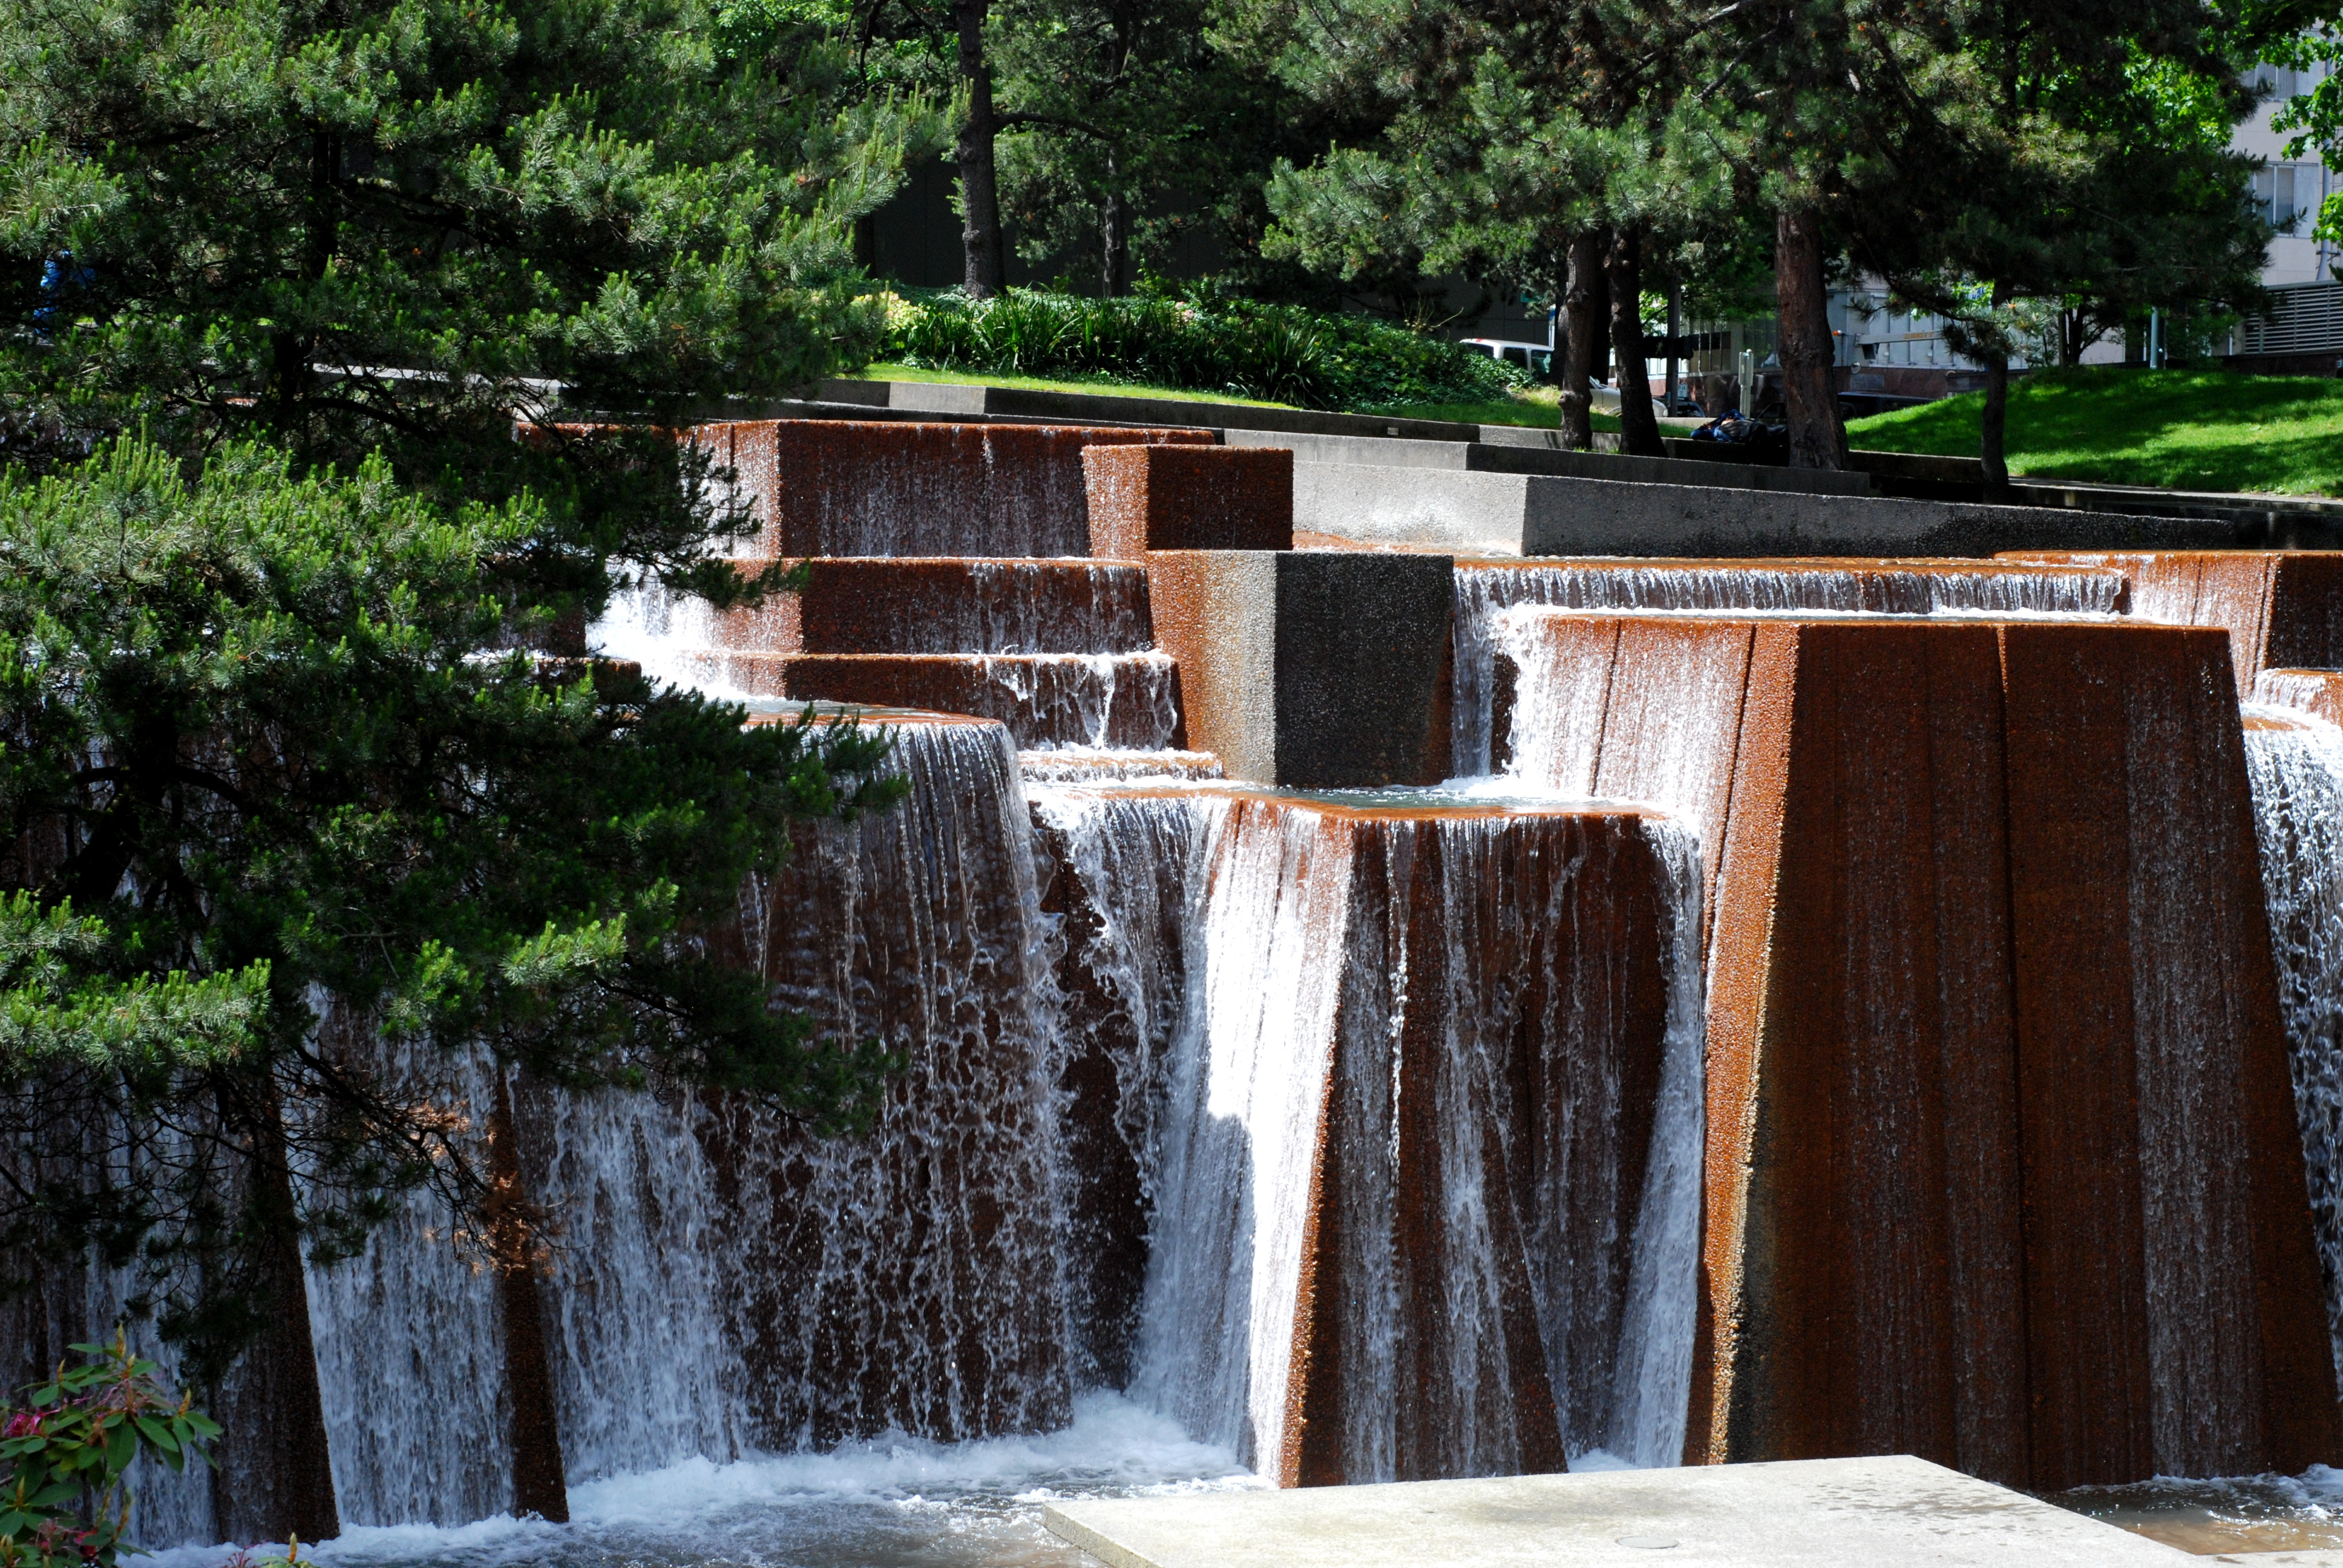 Keller Fountain holds 75,000 gallons of water.